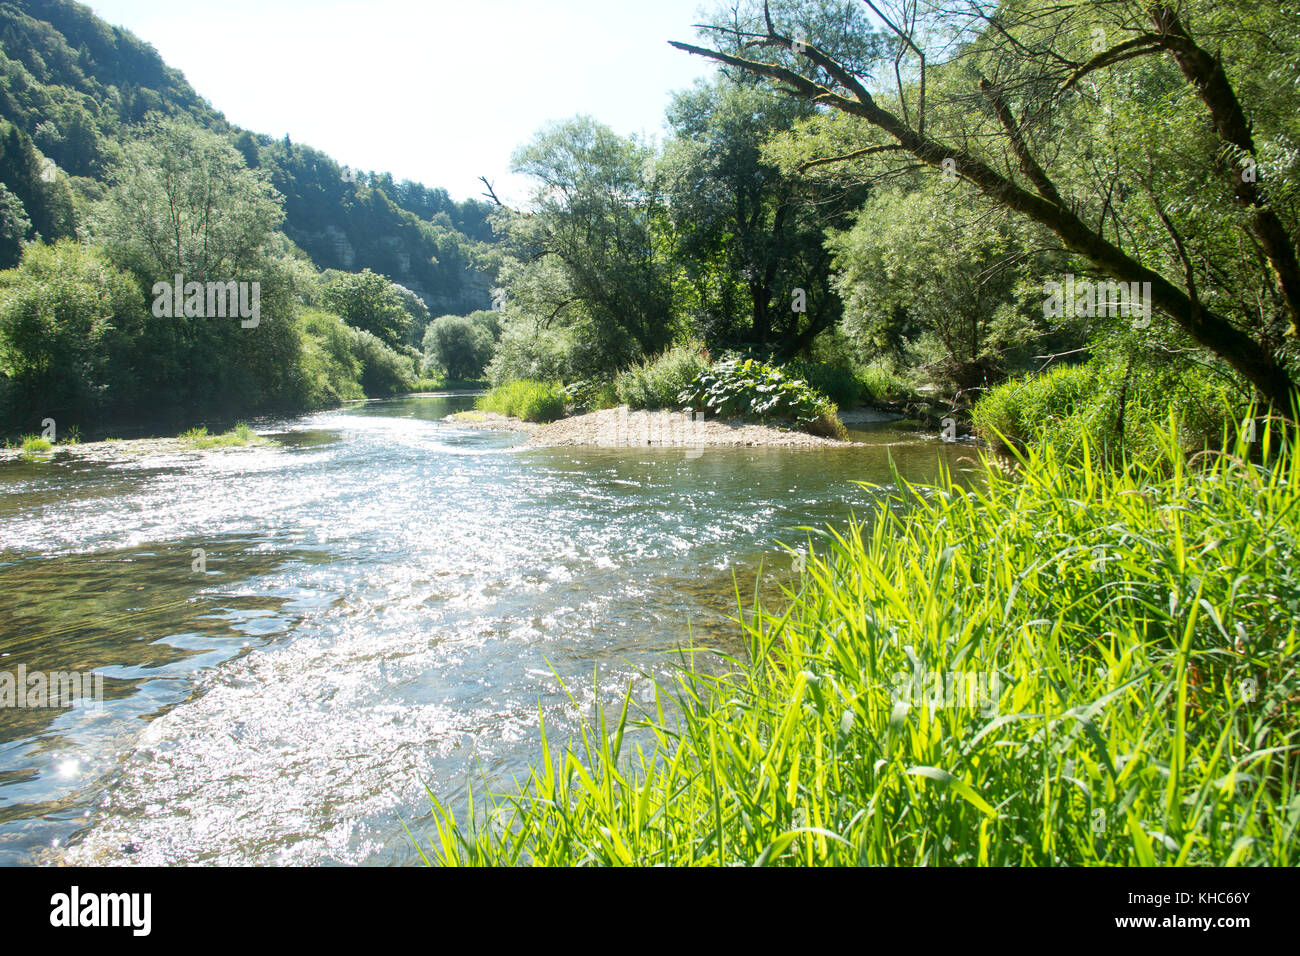 currents in wild river doubs *** Local Caption *** switzerland, jura, soubey, clos du doubs, valley, doubs, river, - Stock Image